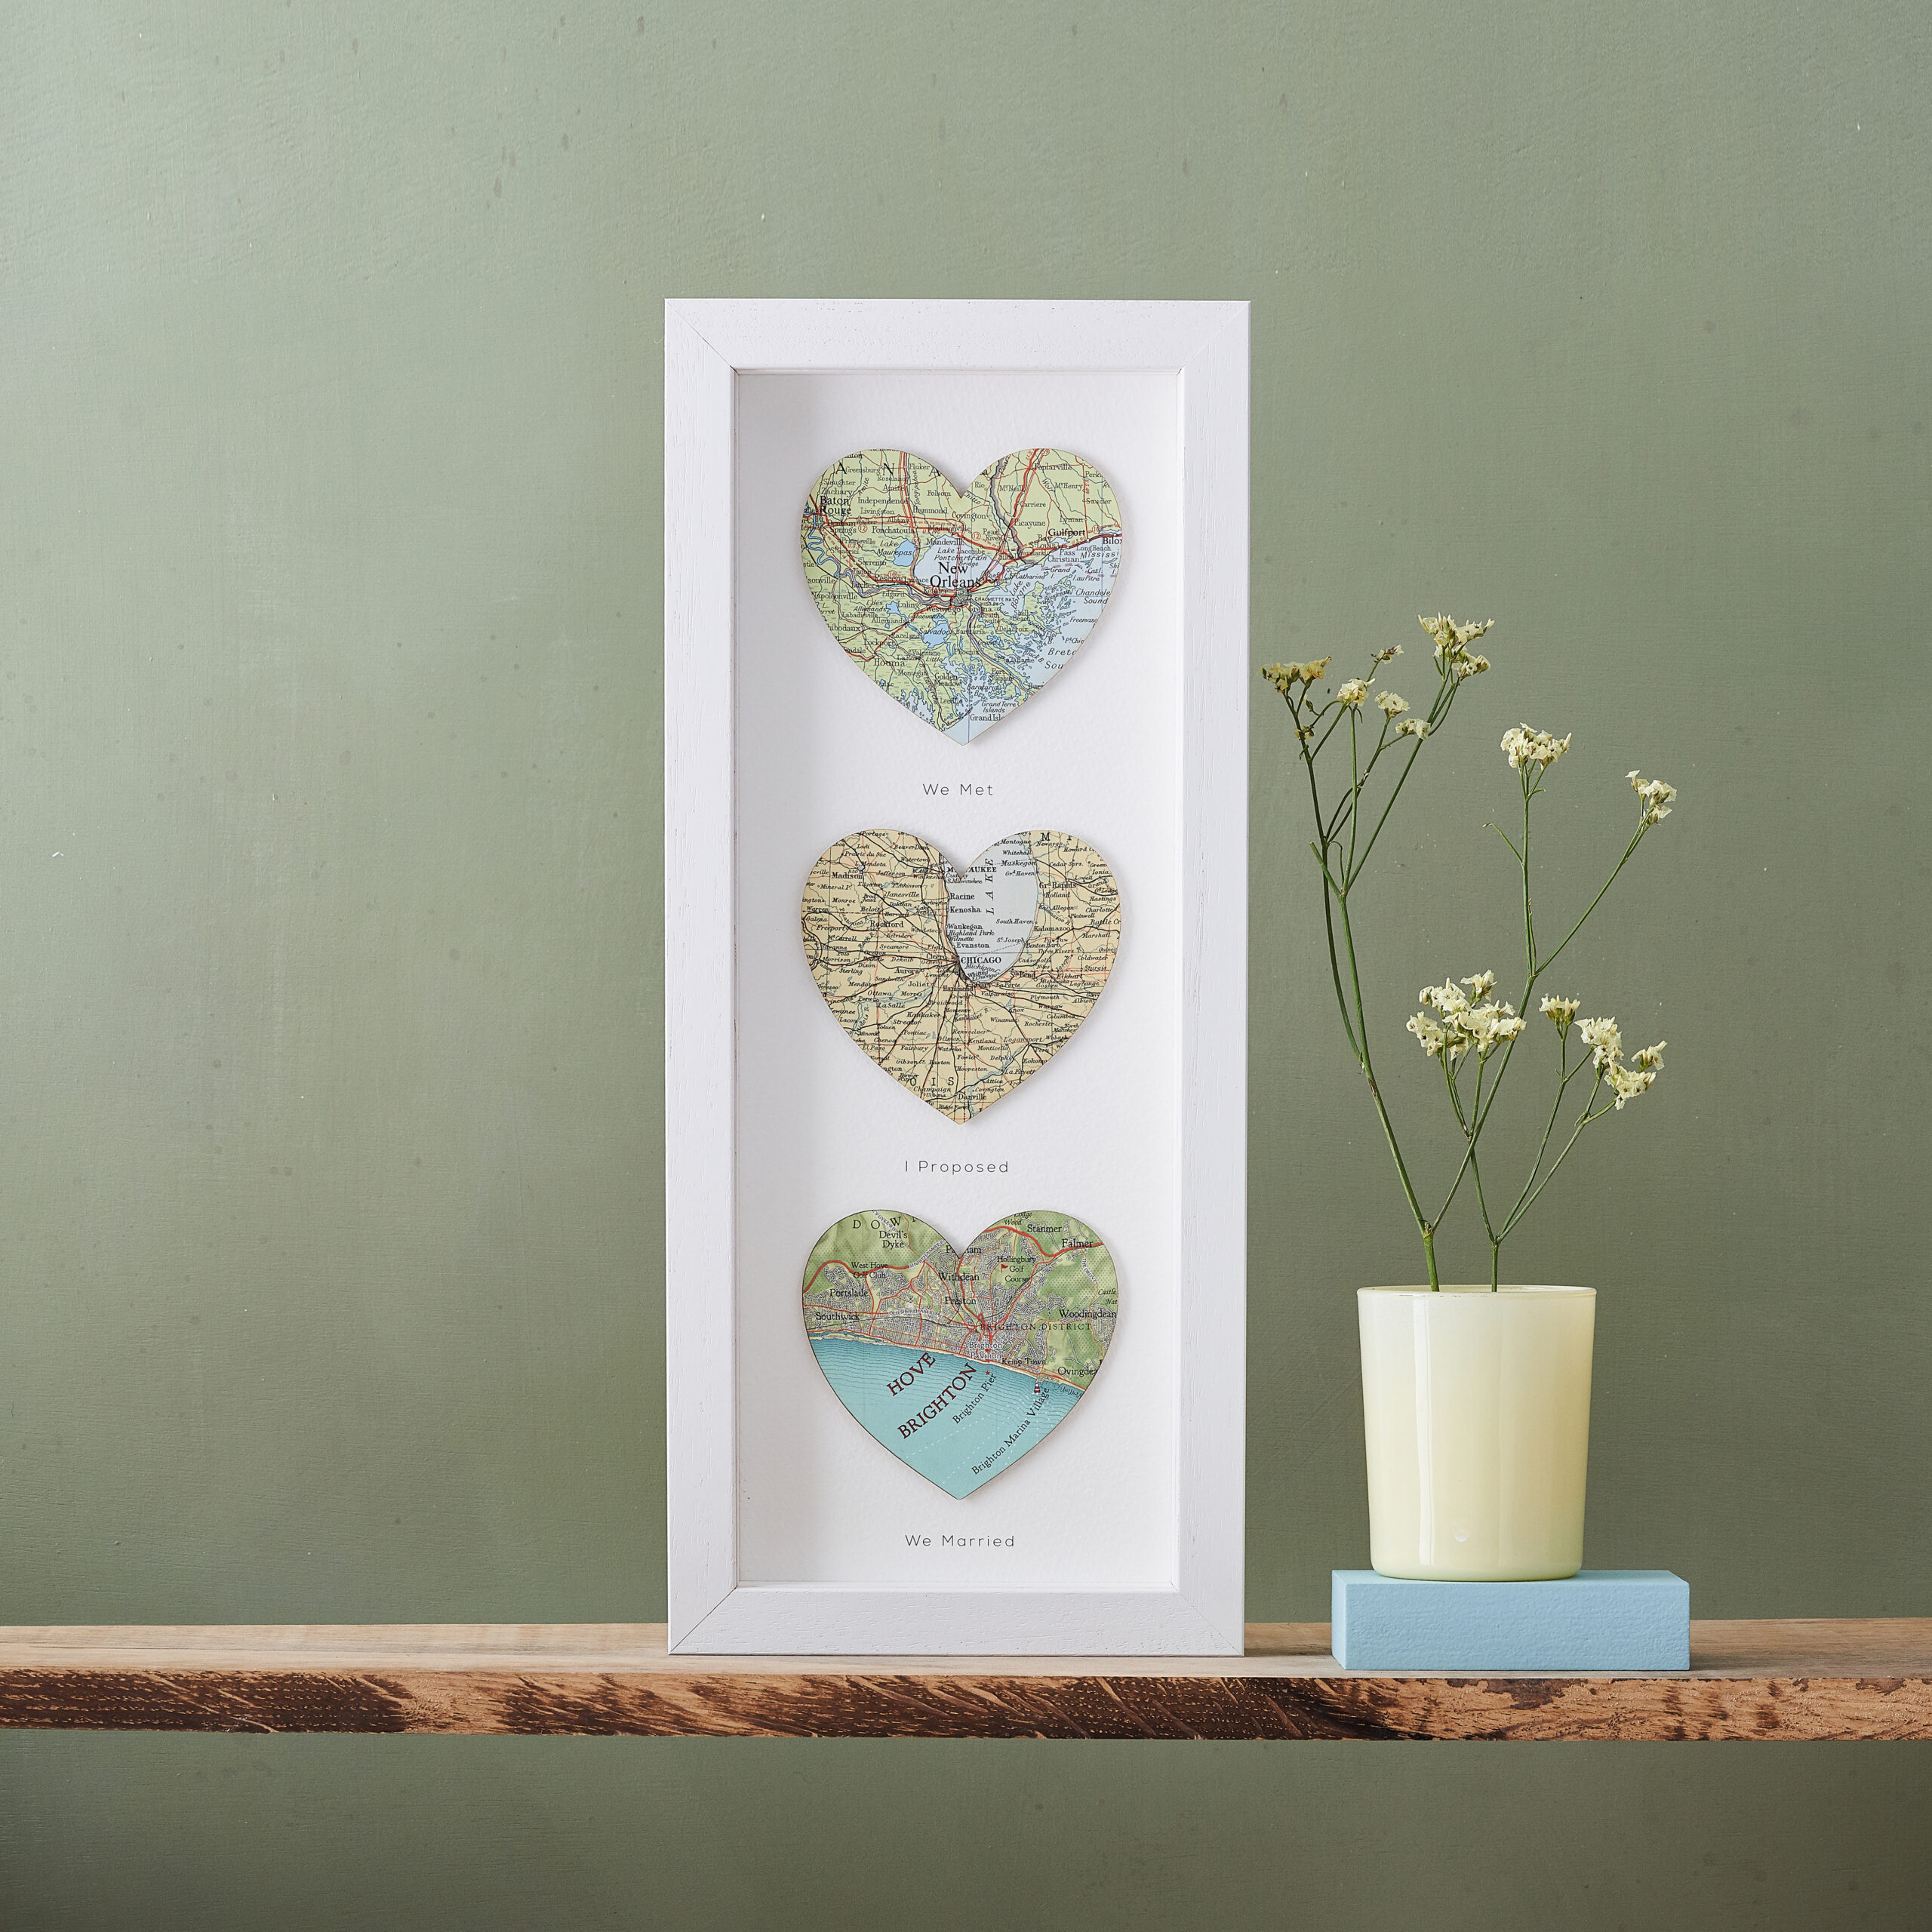 Personalised three map heart artwork as a unique gift idea